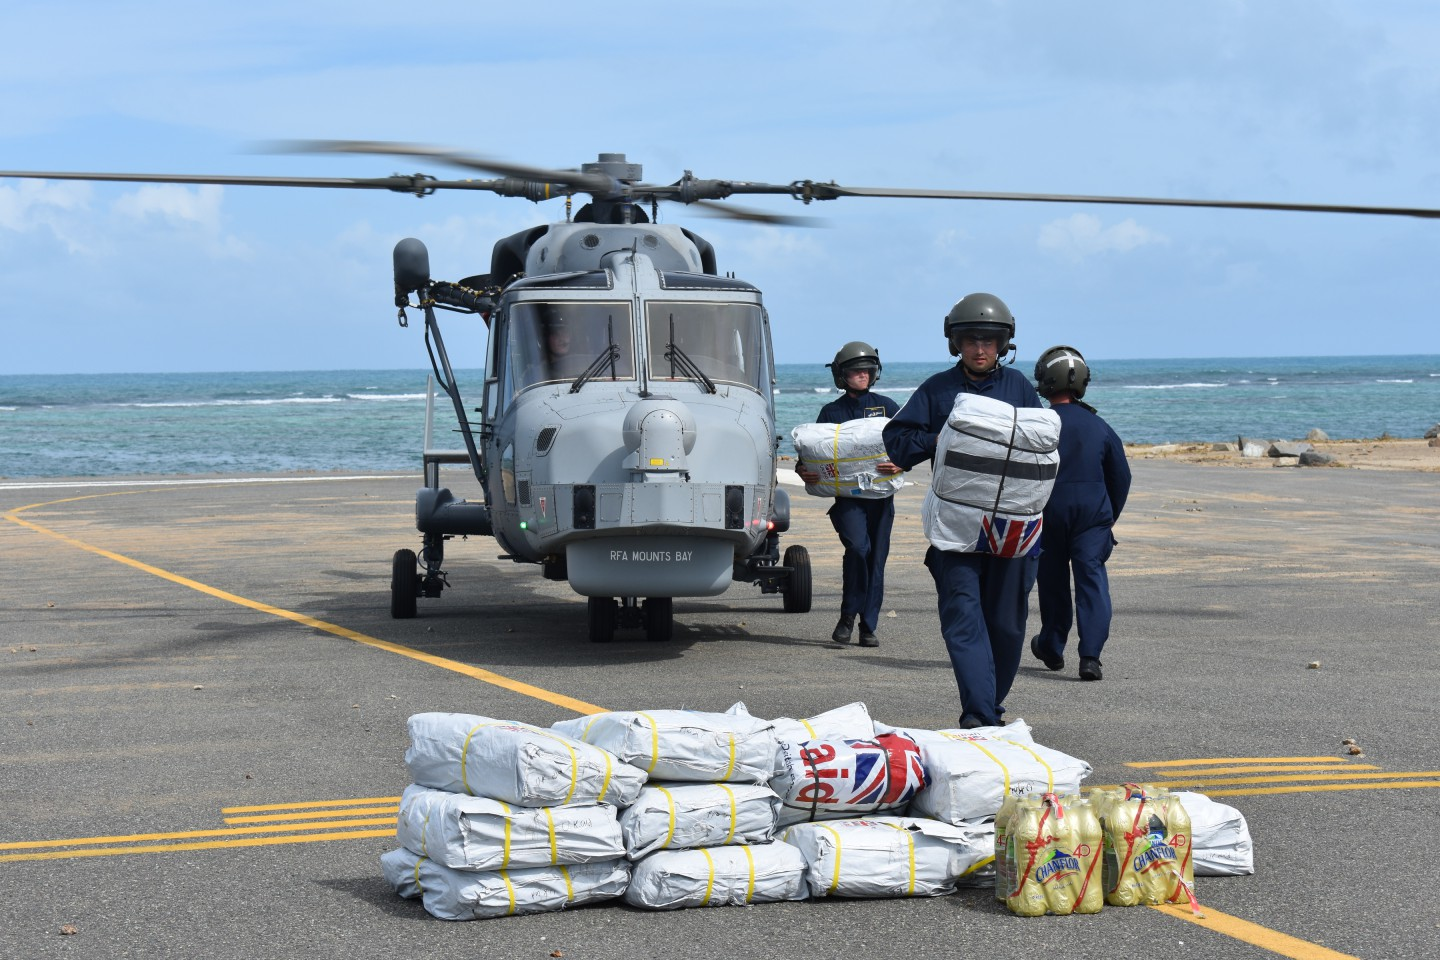 The UK, with Palladium's support, delivered food, hygiene kits, shelter kits and water to victims of Hurricane Irma in the Caribbean. Source: DFID